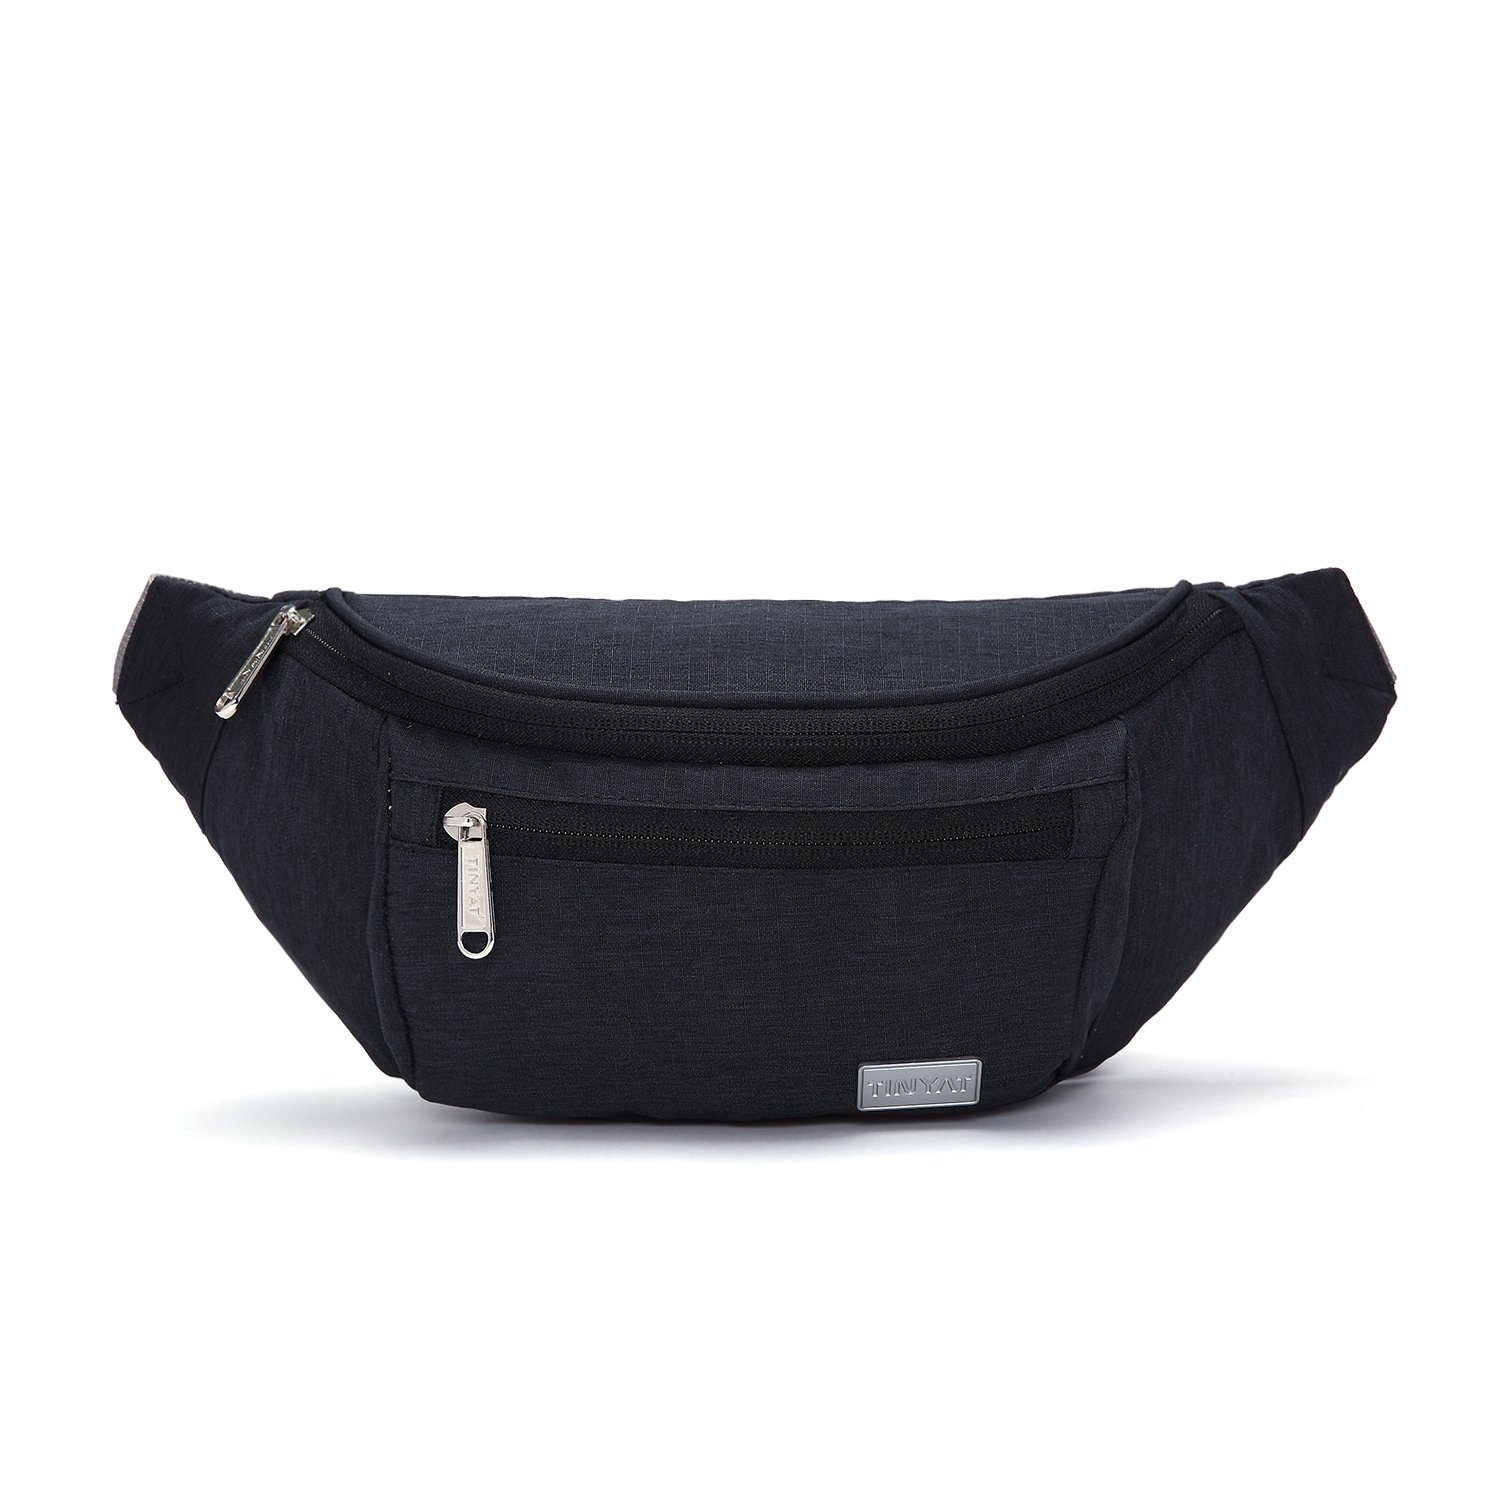 Amazon.com  TINYAT Travel Fanny Bag Waist Pack Sling Pocket Super  Lightweight For Workout Vacation Hiking b02e5a5f196c